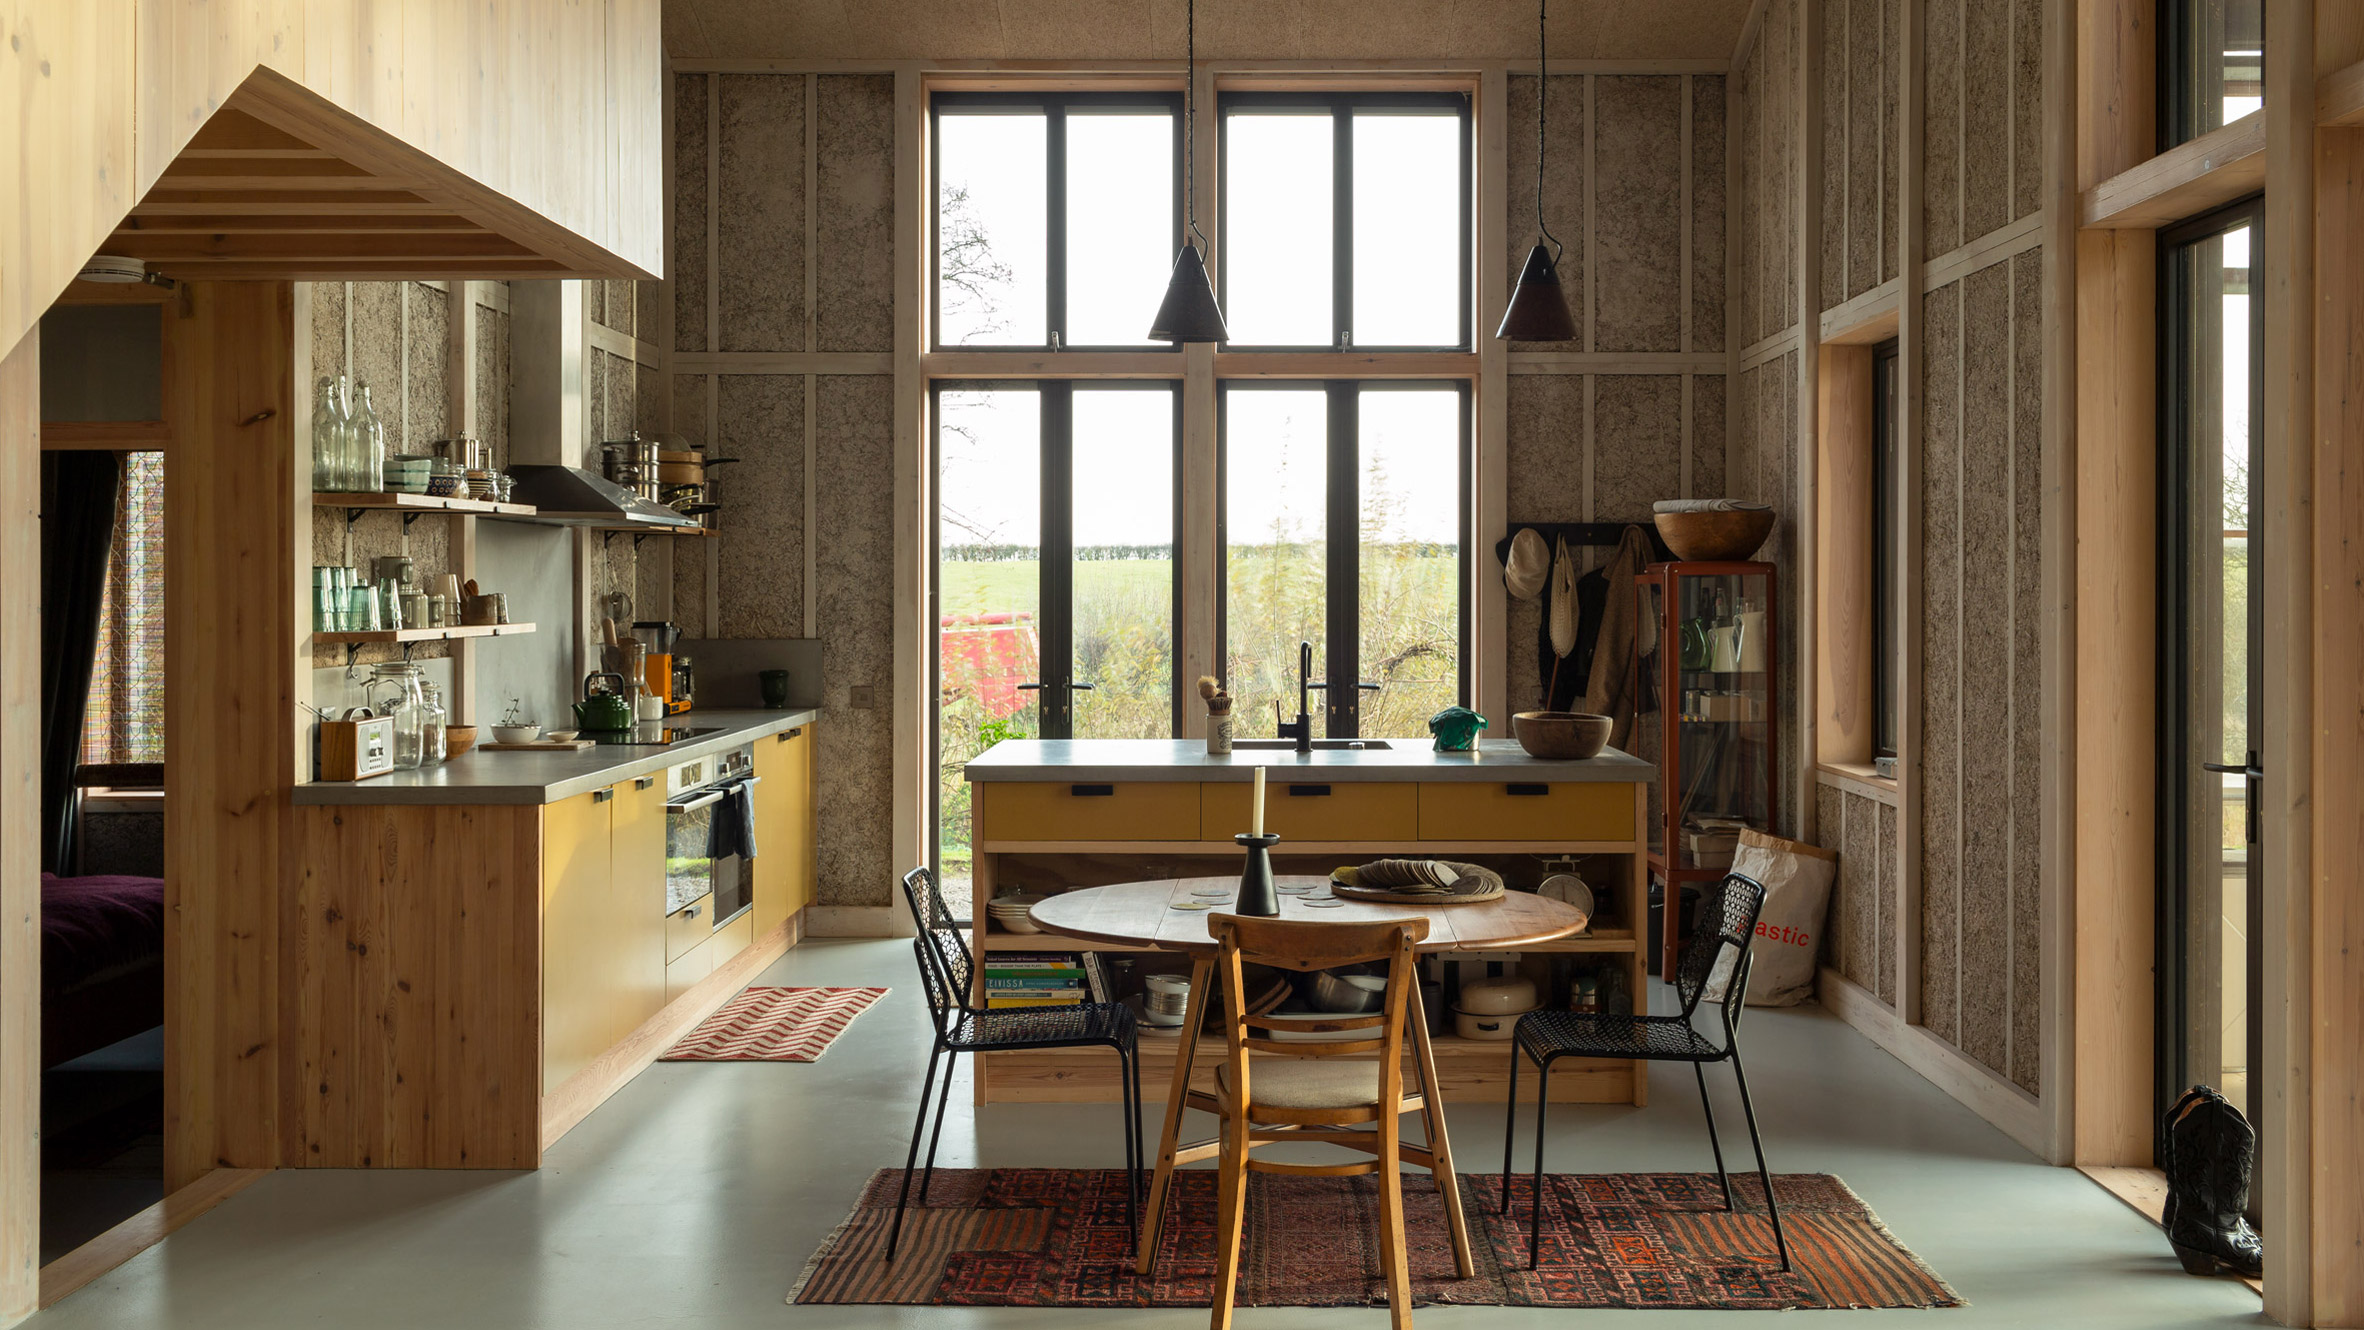 A domestic kitchen with exposed hempcrete walls